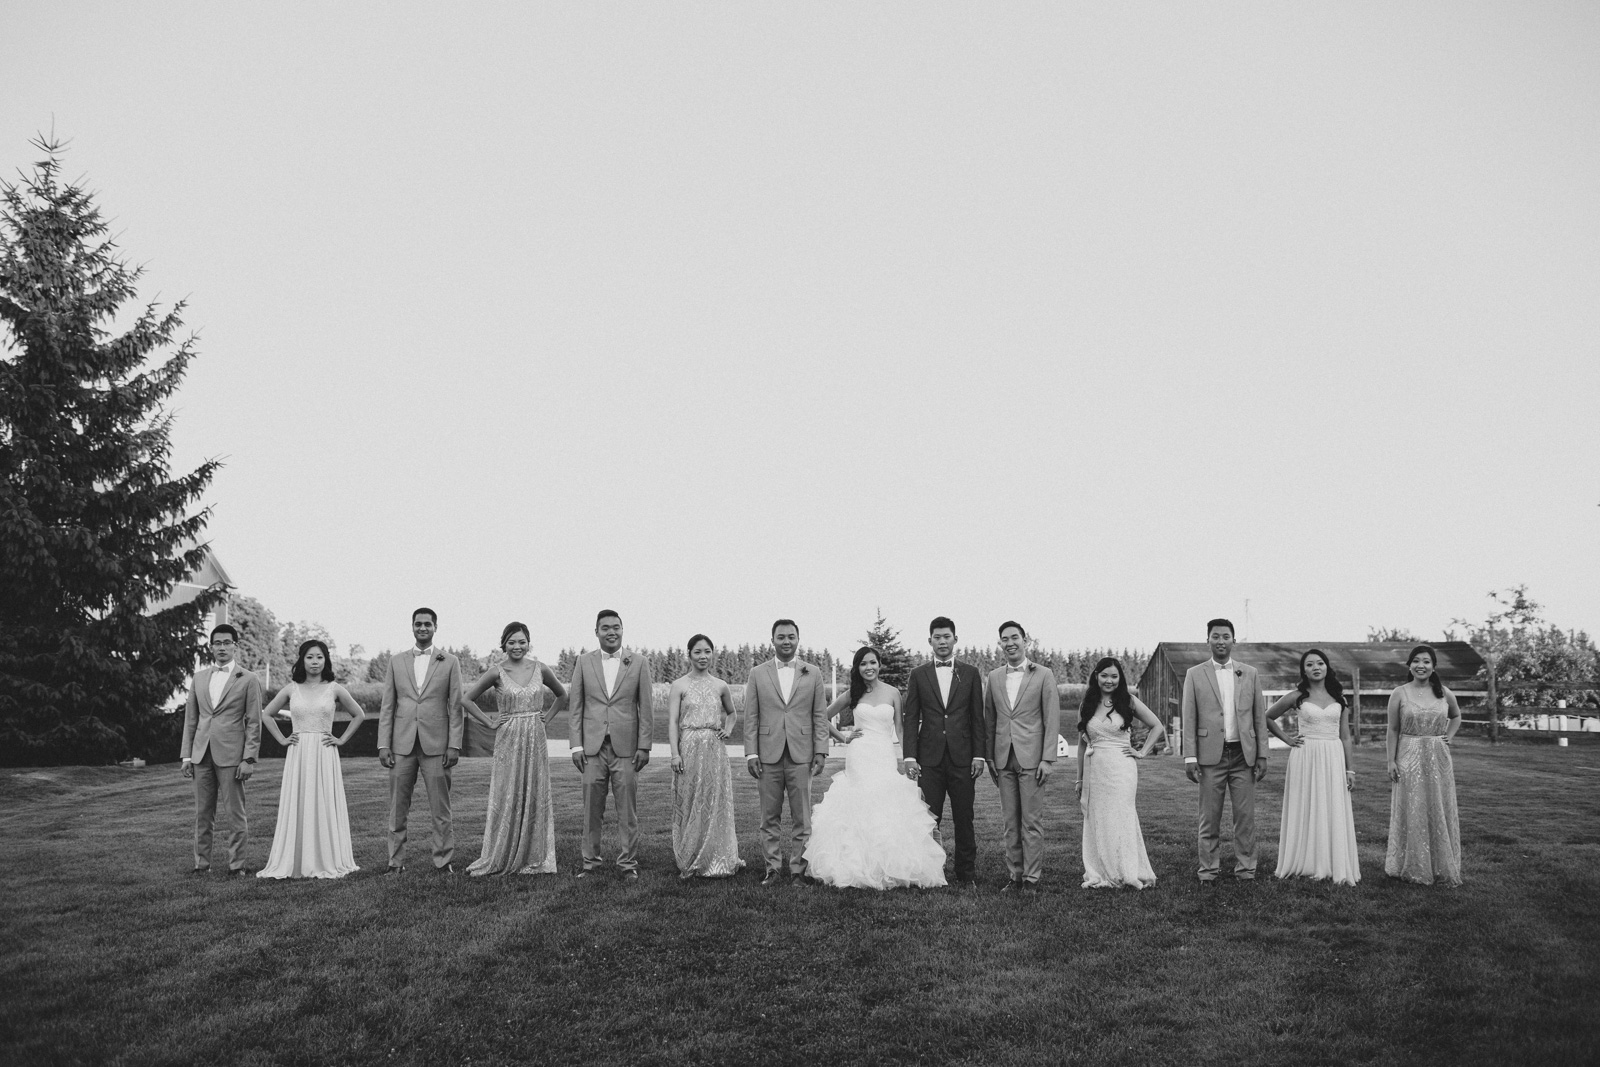 cambium-farms-wedding-photography-by-sam-wong-of-artanis-collective_41